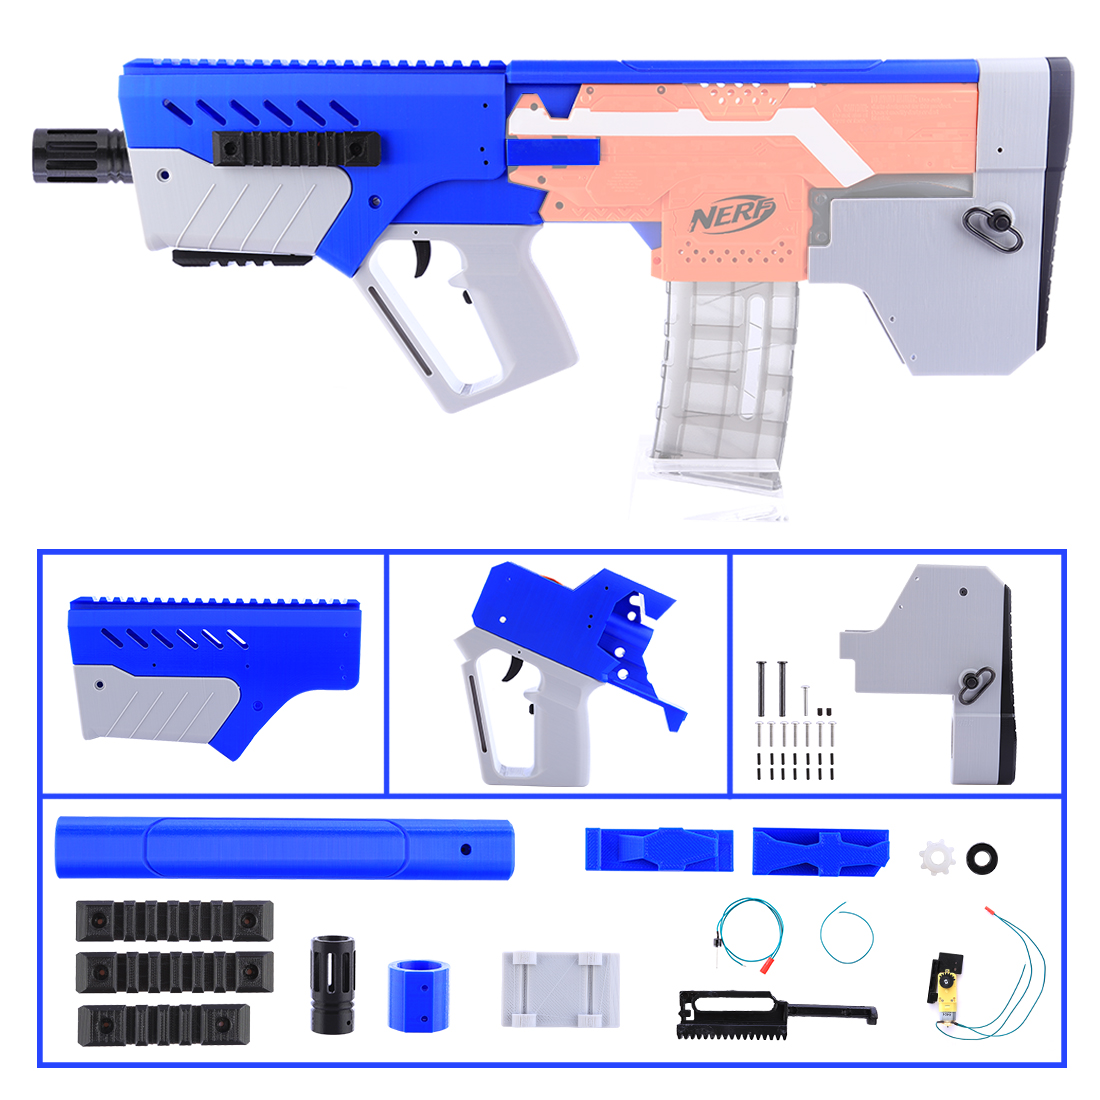 XSW STF Appearance Fully Automatic MXD-1 Refit Kit for Nerf stryfe - Blue + Gray 30 mxd 3000 30